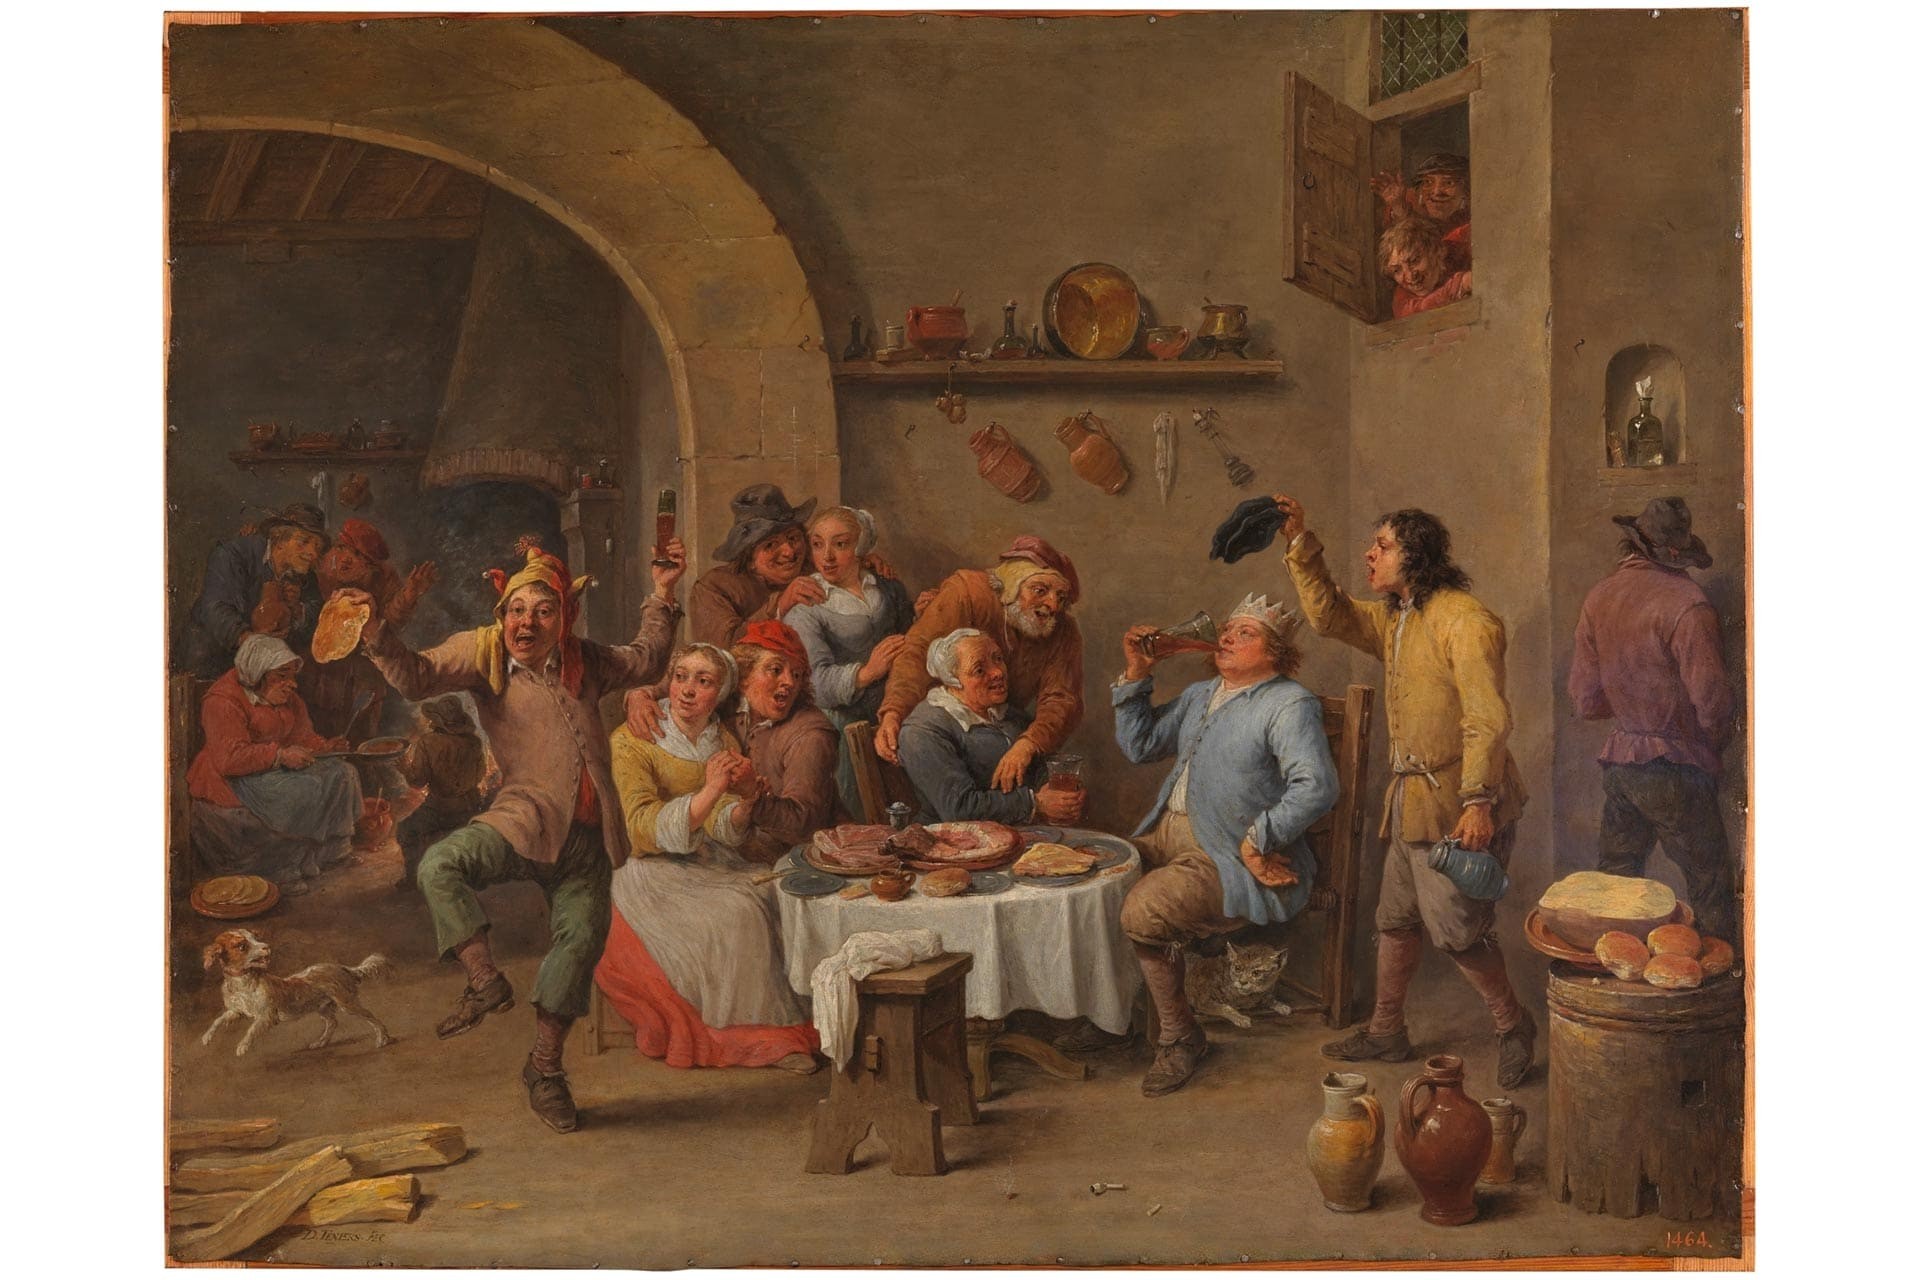 Lord of misrule by David Teniers the Younger